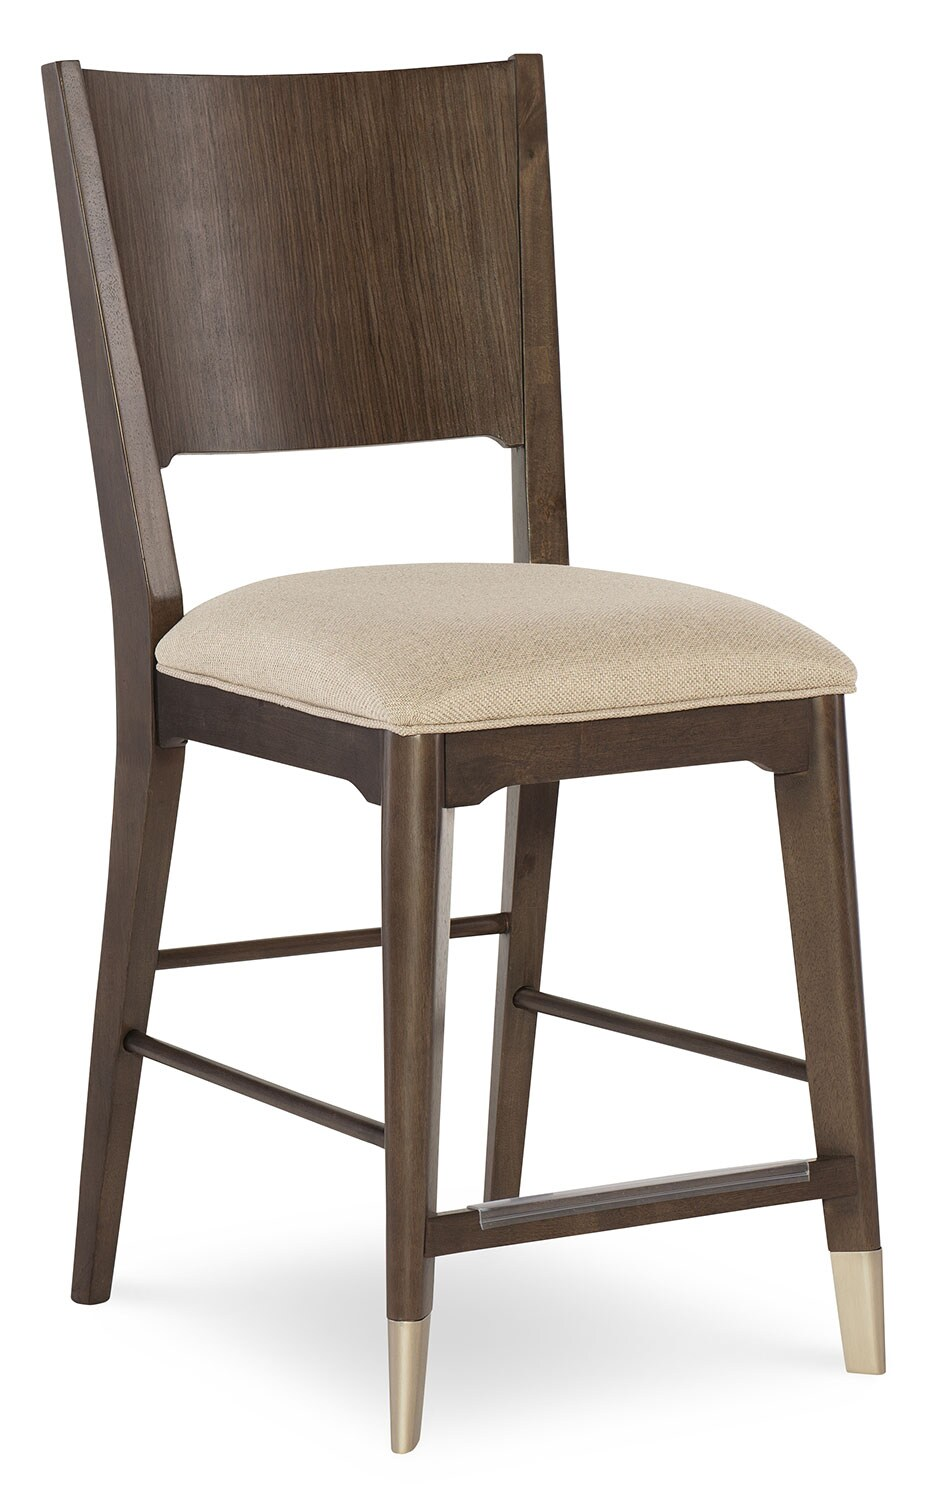 Dining Room Furniture - Rachael Ray Soho Kitchen Stool - Ash Brown